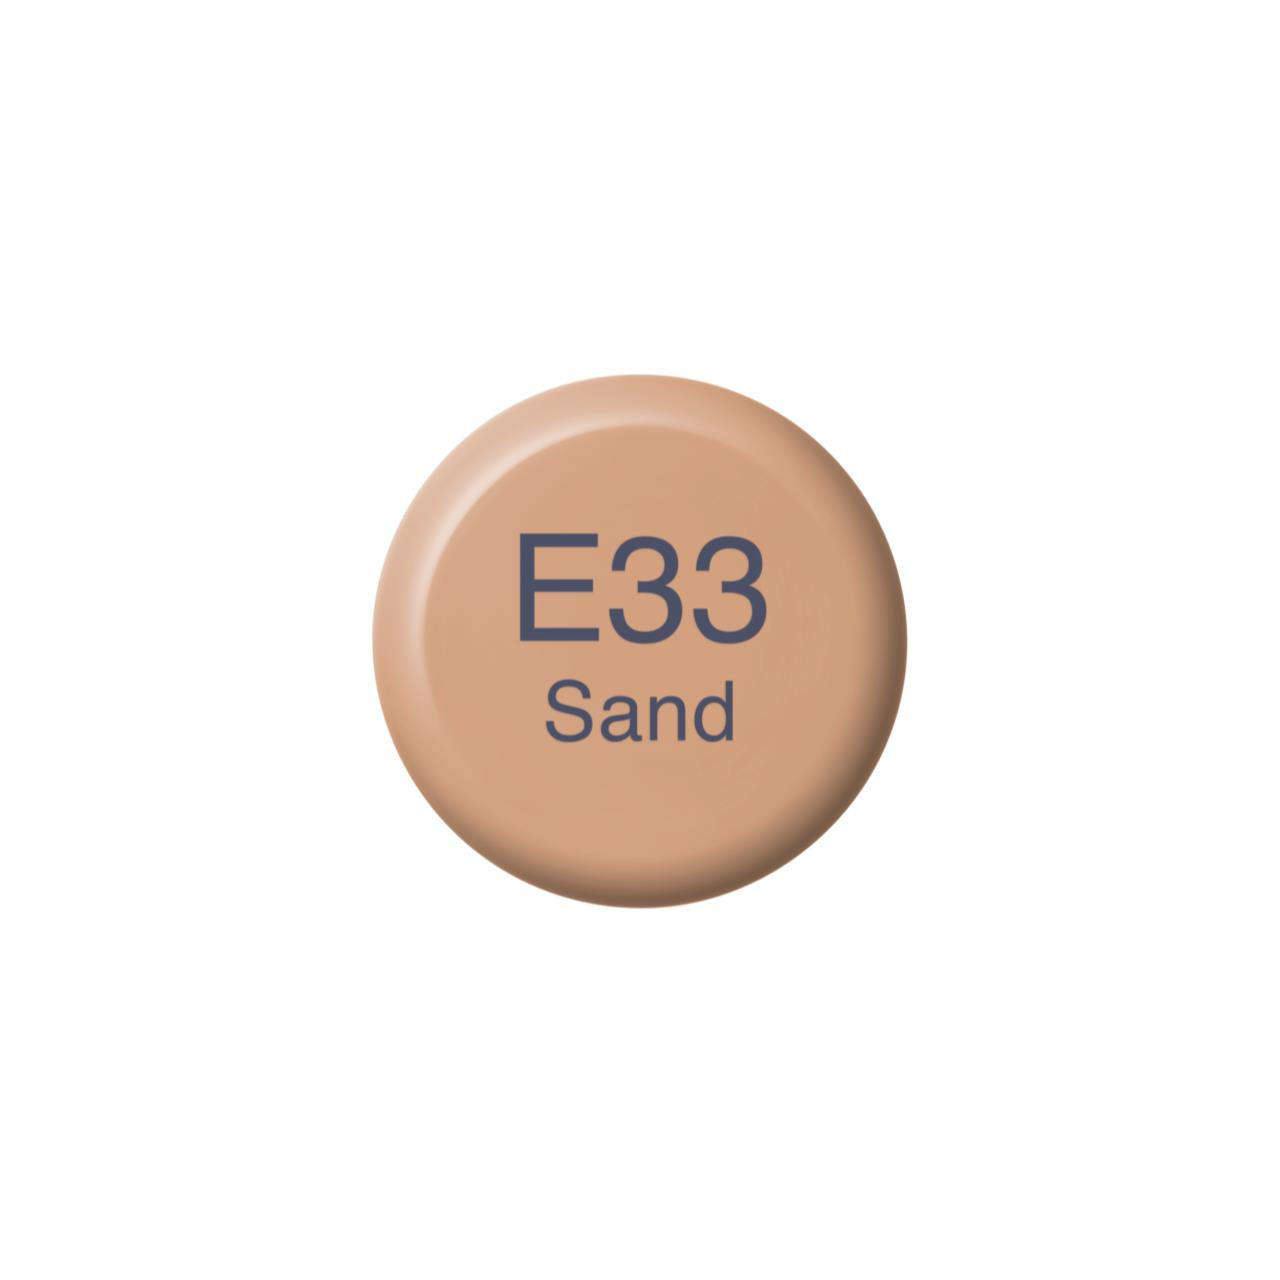 E33 Sand, Copic Ink - 4511338056806